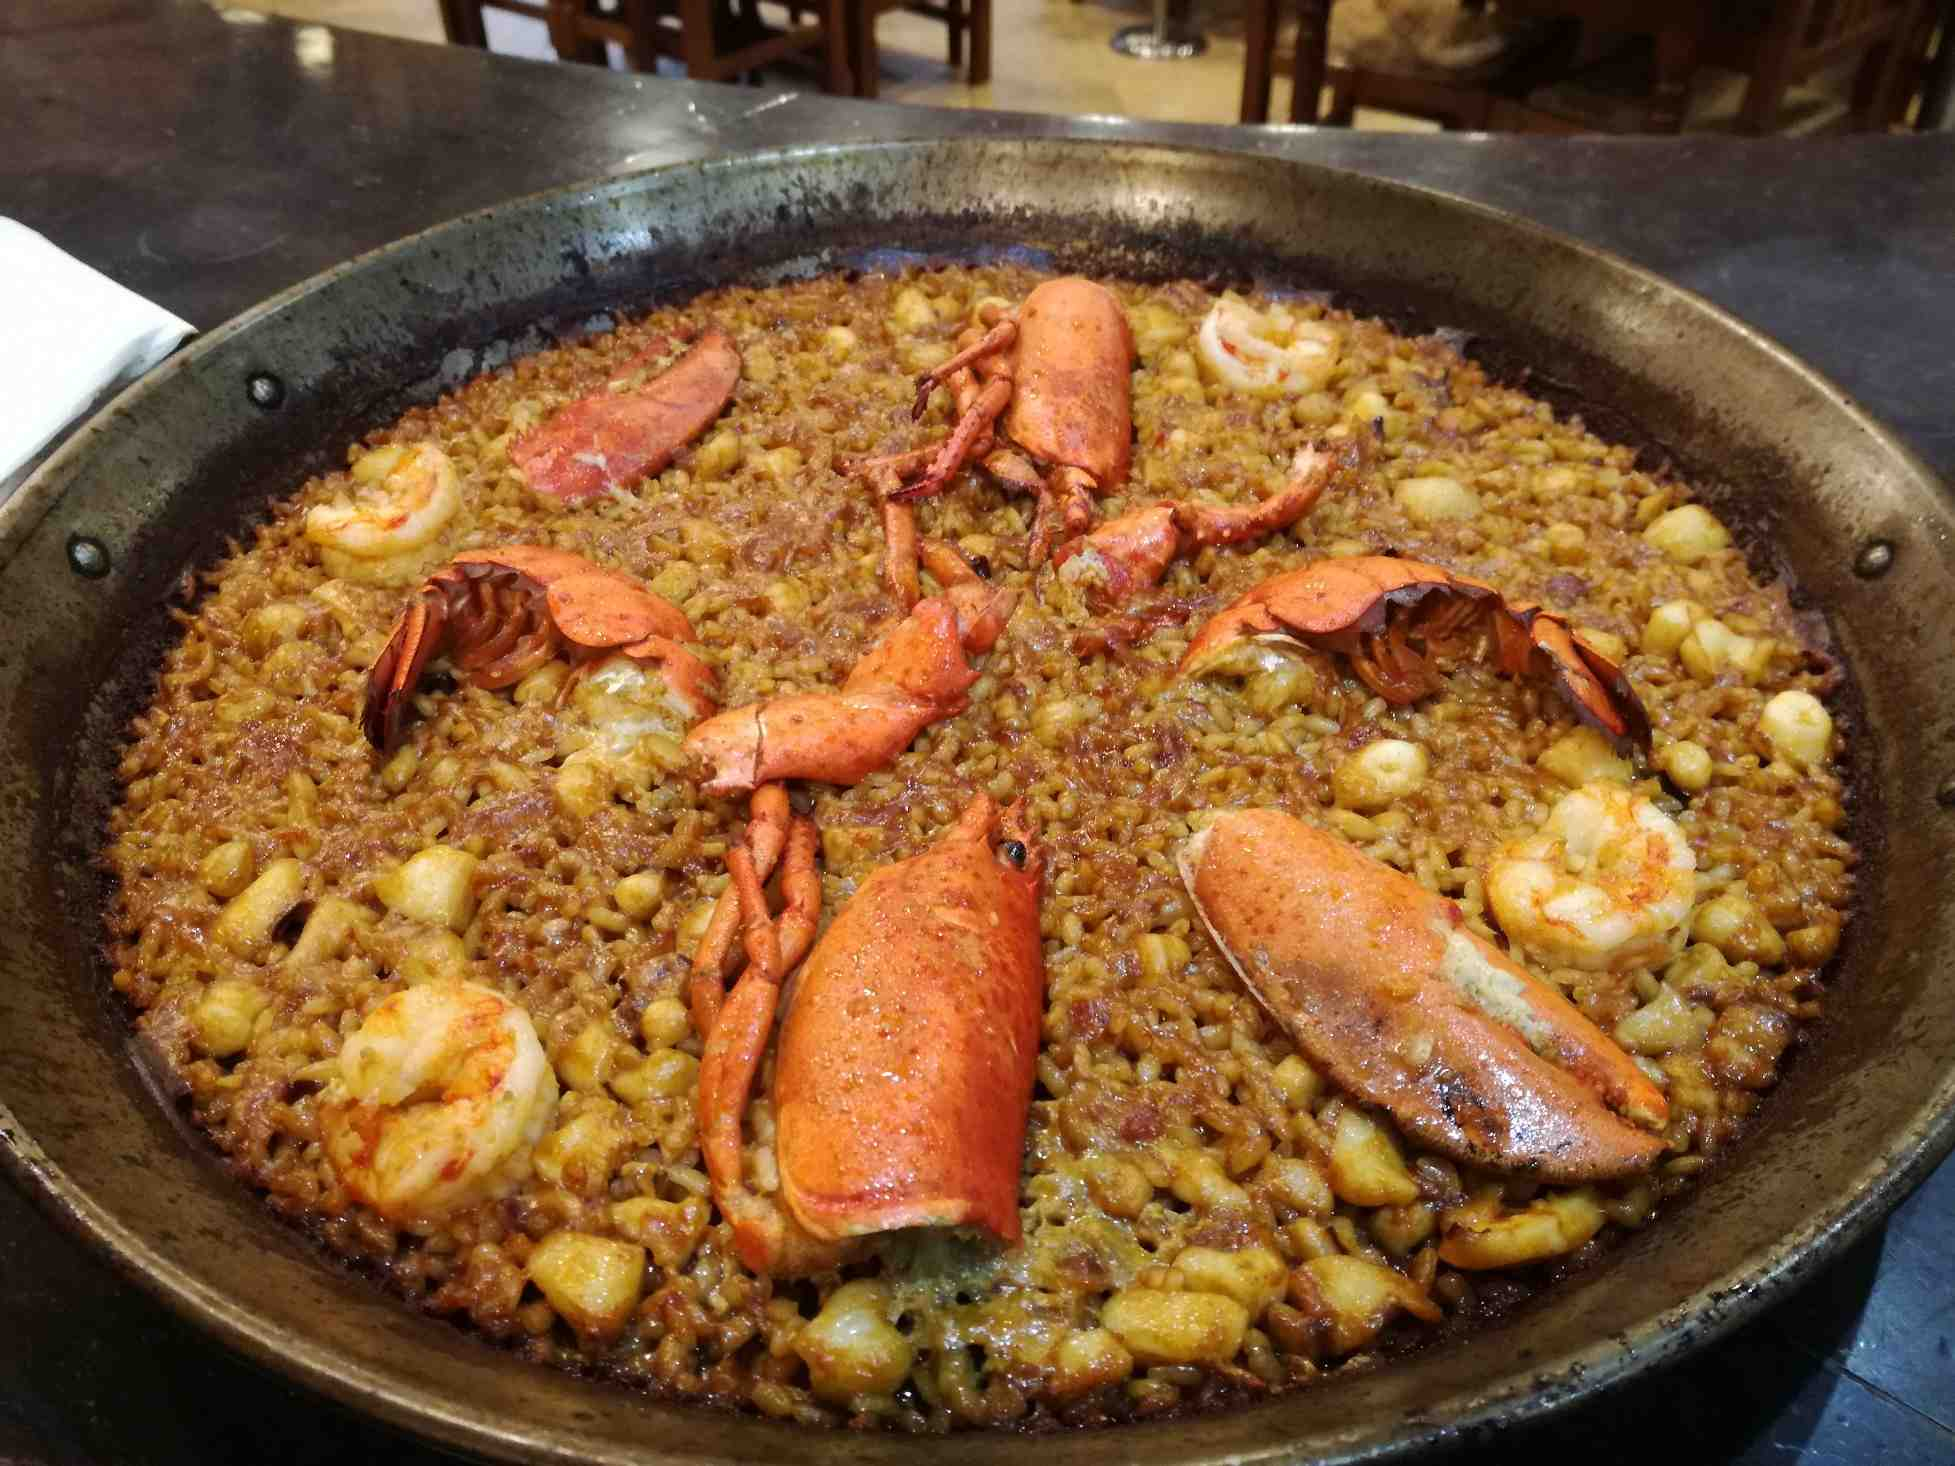 restaurante-marisqueria-valencia-islas-canarias-puerto-ciudad-artes-ciencias-paella-bogavante-2